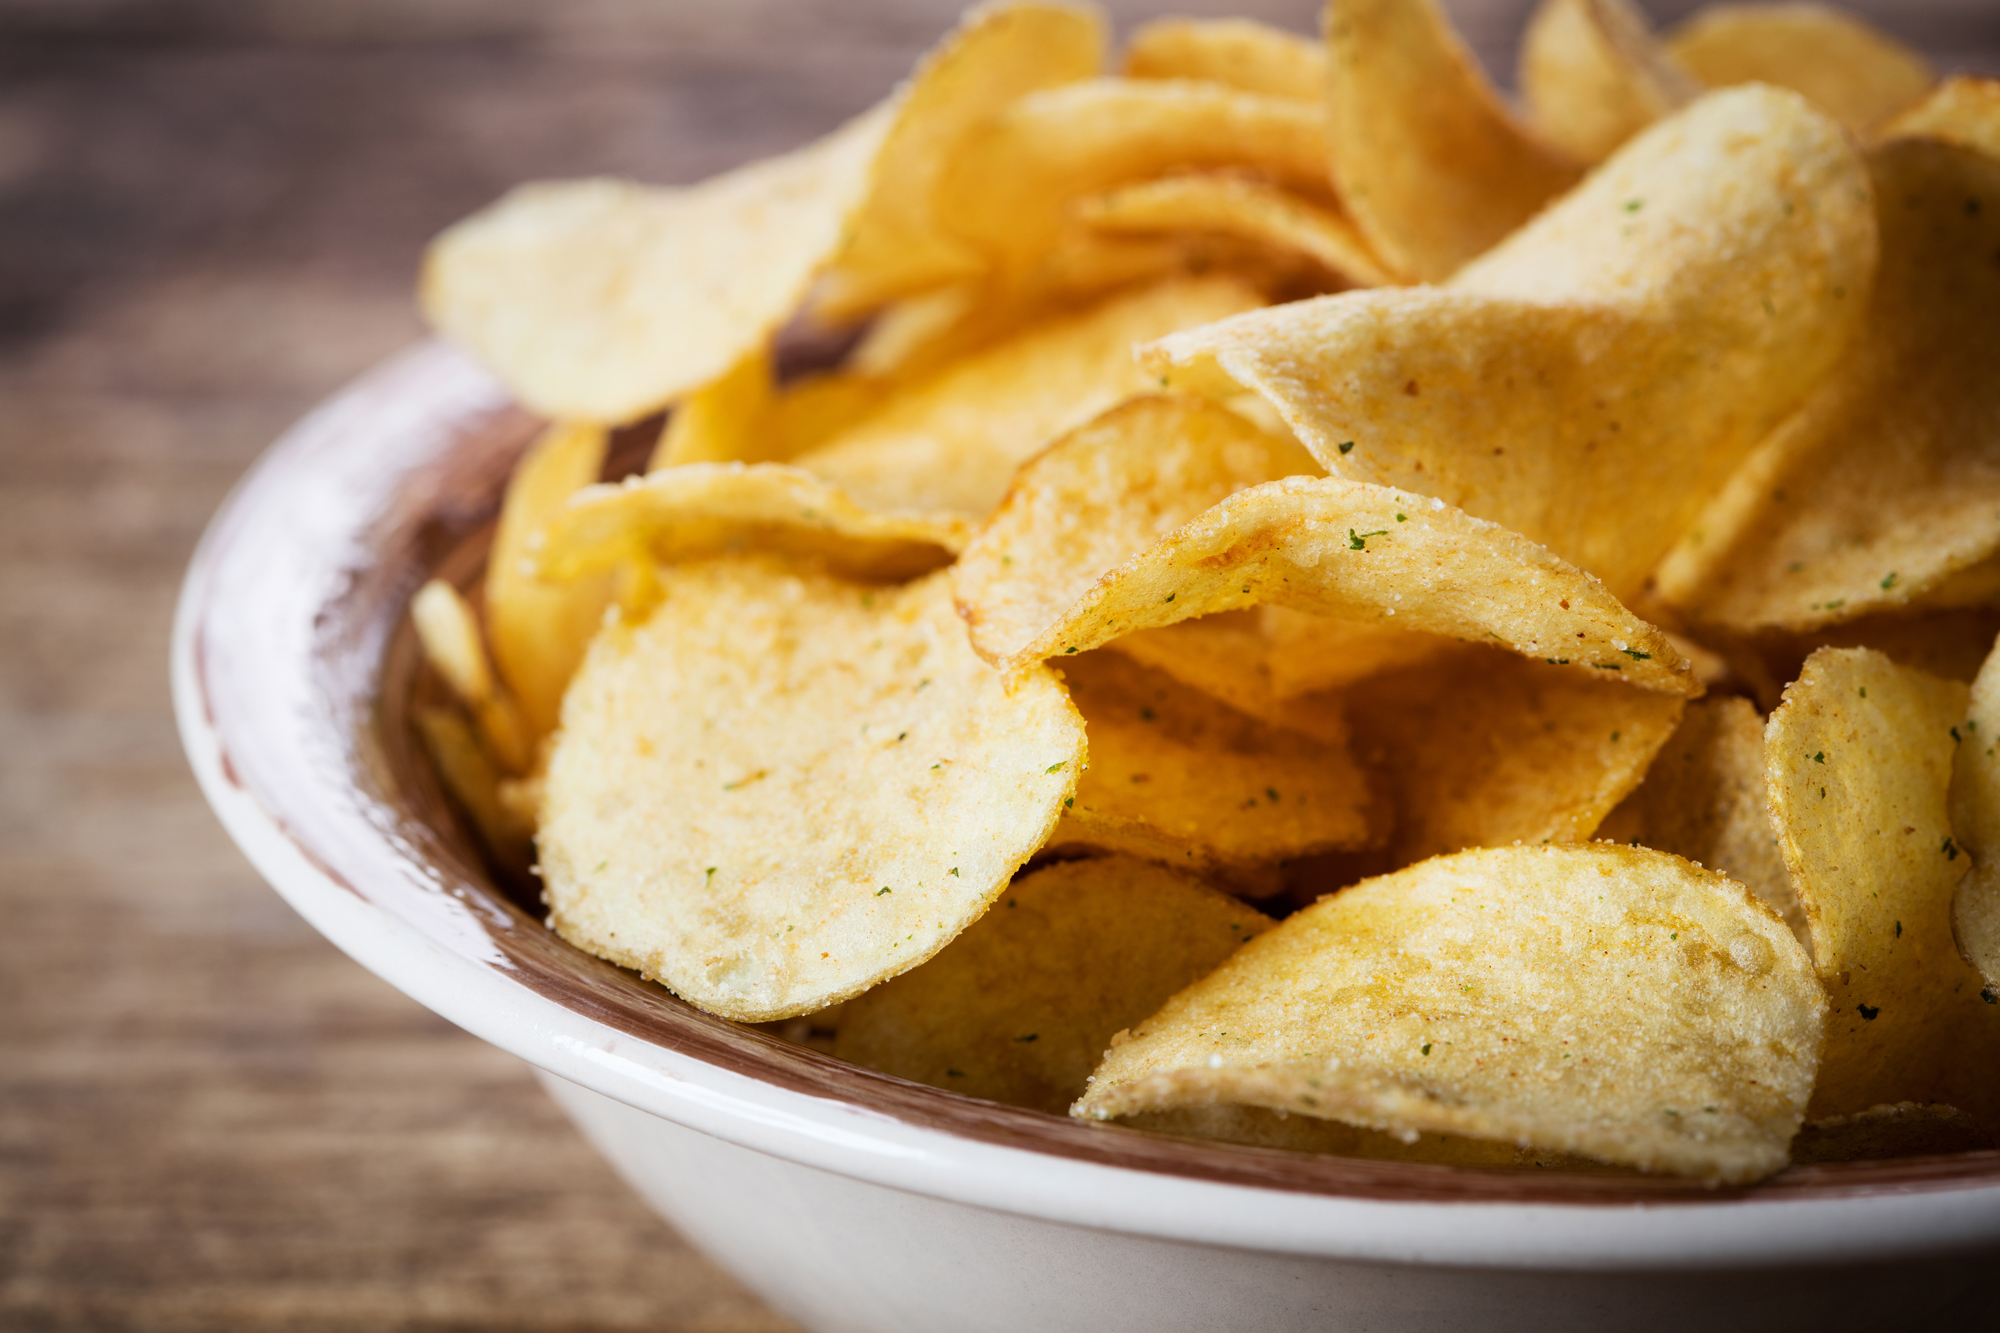 8 Surprising Foods Your Dentist Doesn't Want You to Eat